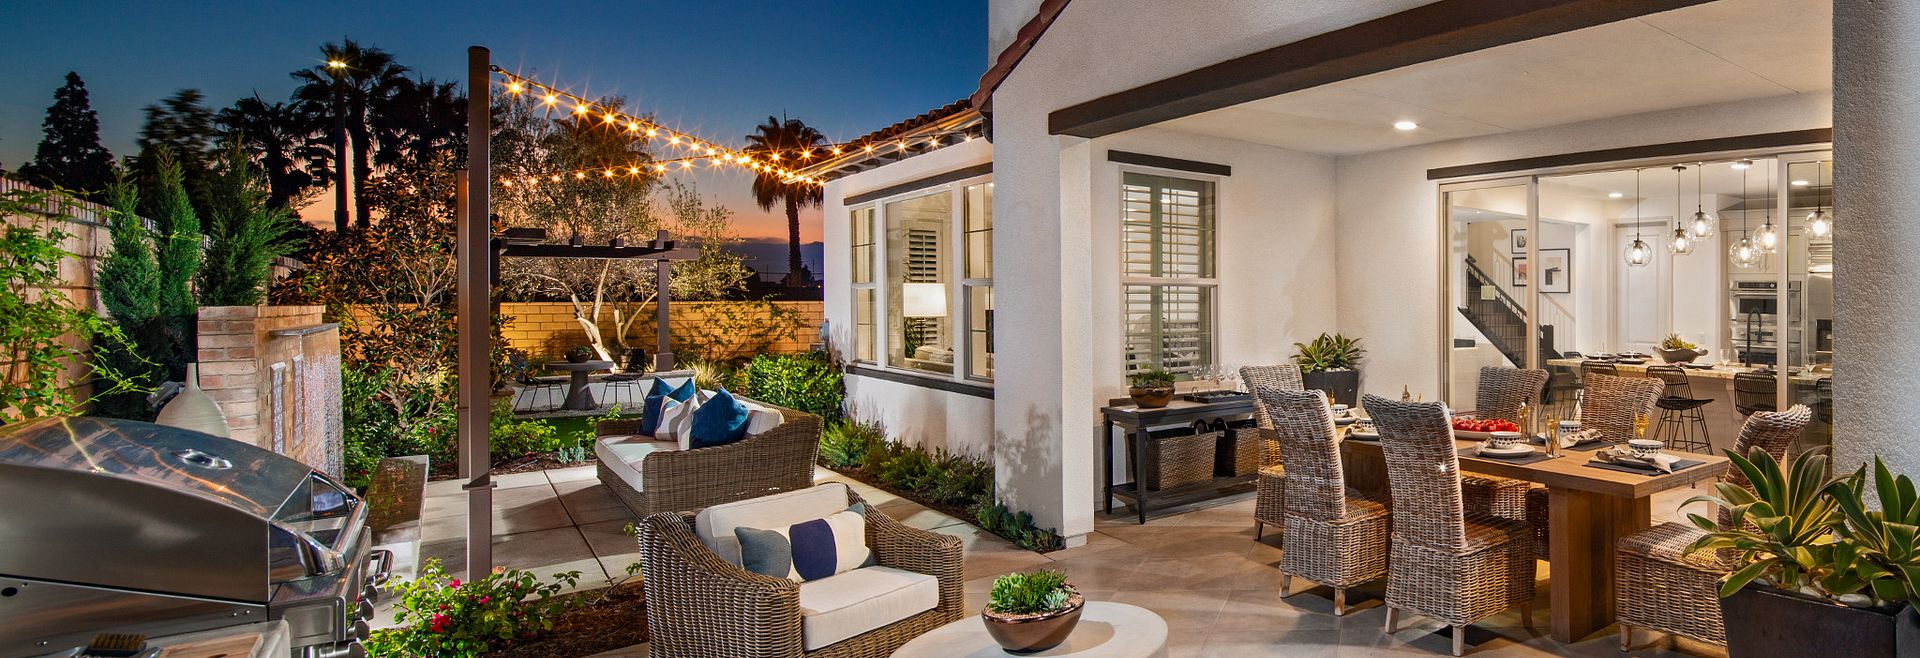 Artisan at South Coast by Shea Homes in Santa Ana, CA